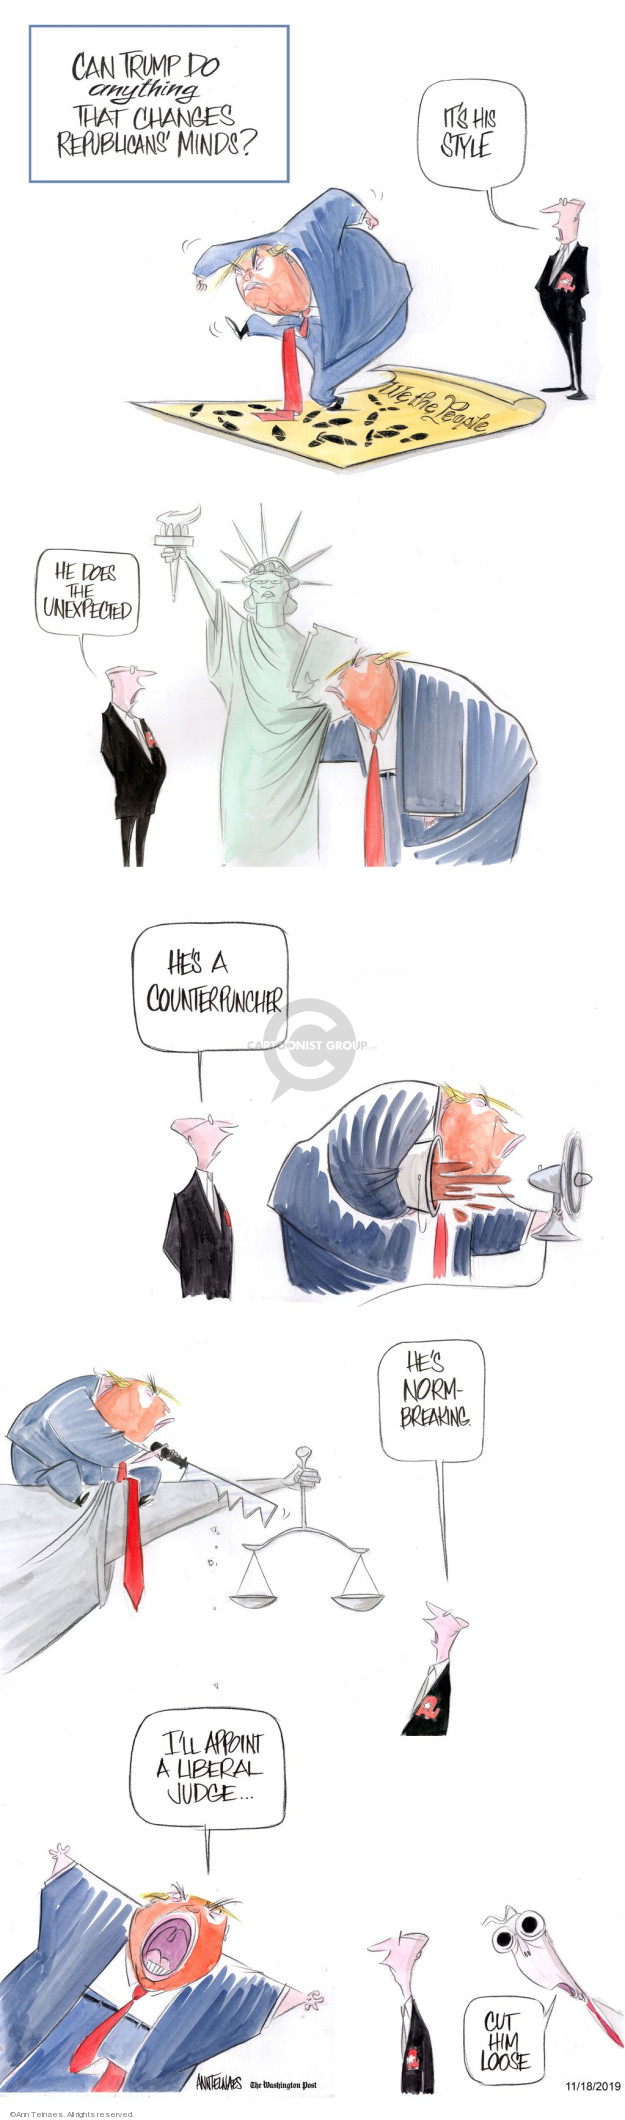 Cartoonist Ann Telnaes  Ann Telnaes' Editorial Cartoons 2019-11-18 American president